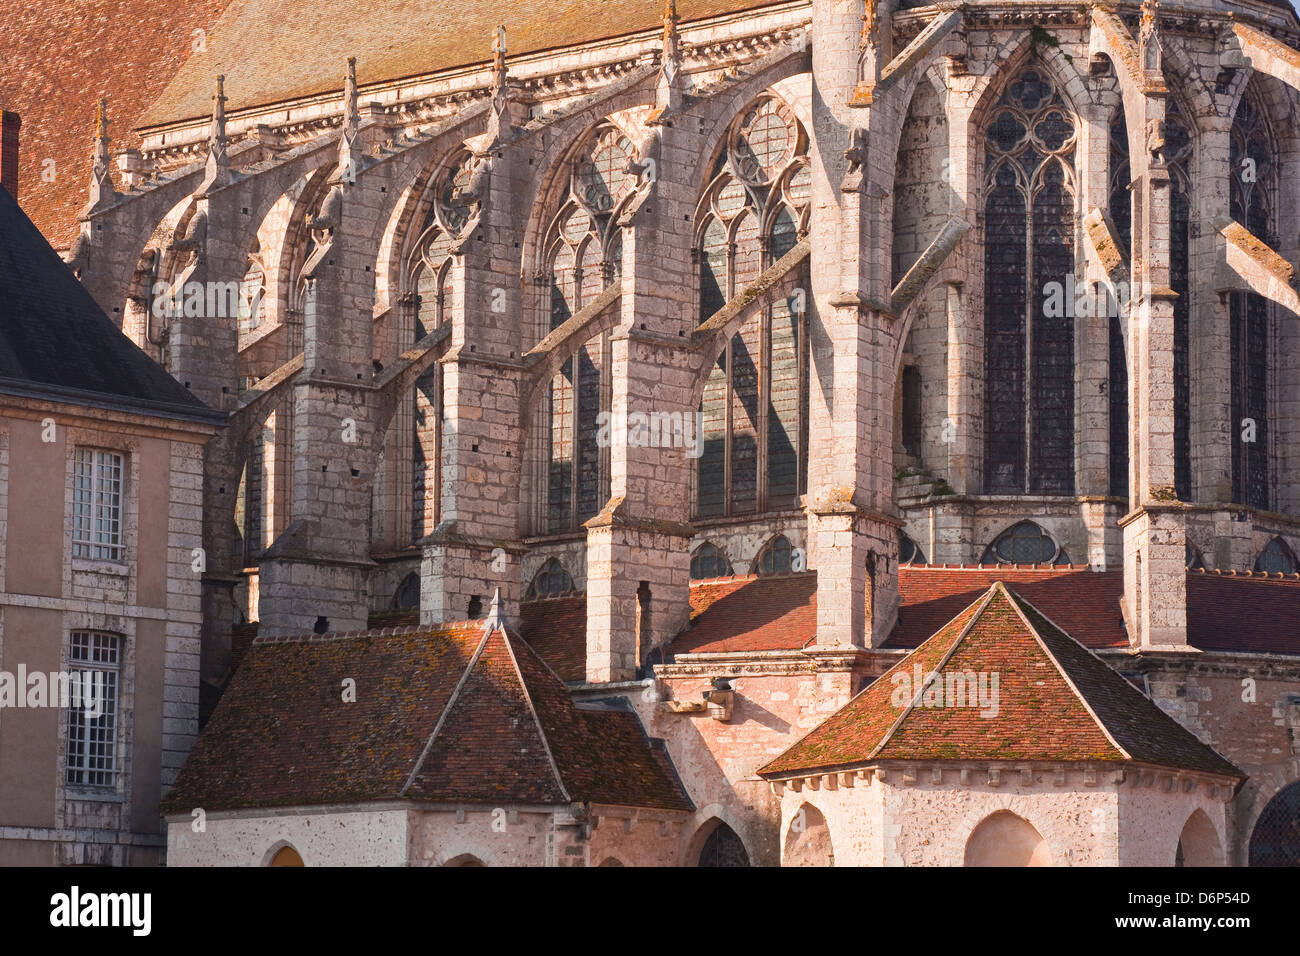 Flying butresses sur l'église de l'abbaye de Saint Pierre de Chartres, Eure-et-Loir, Centre, France, Photo Stock